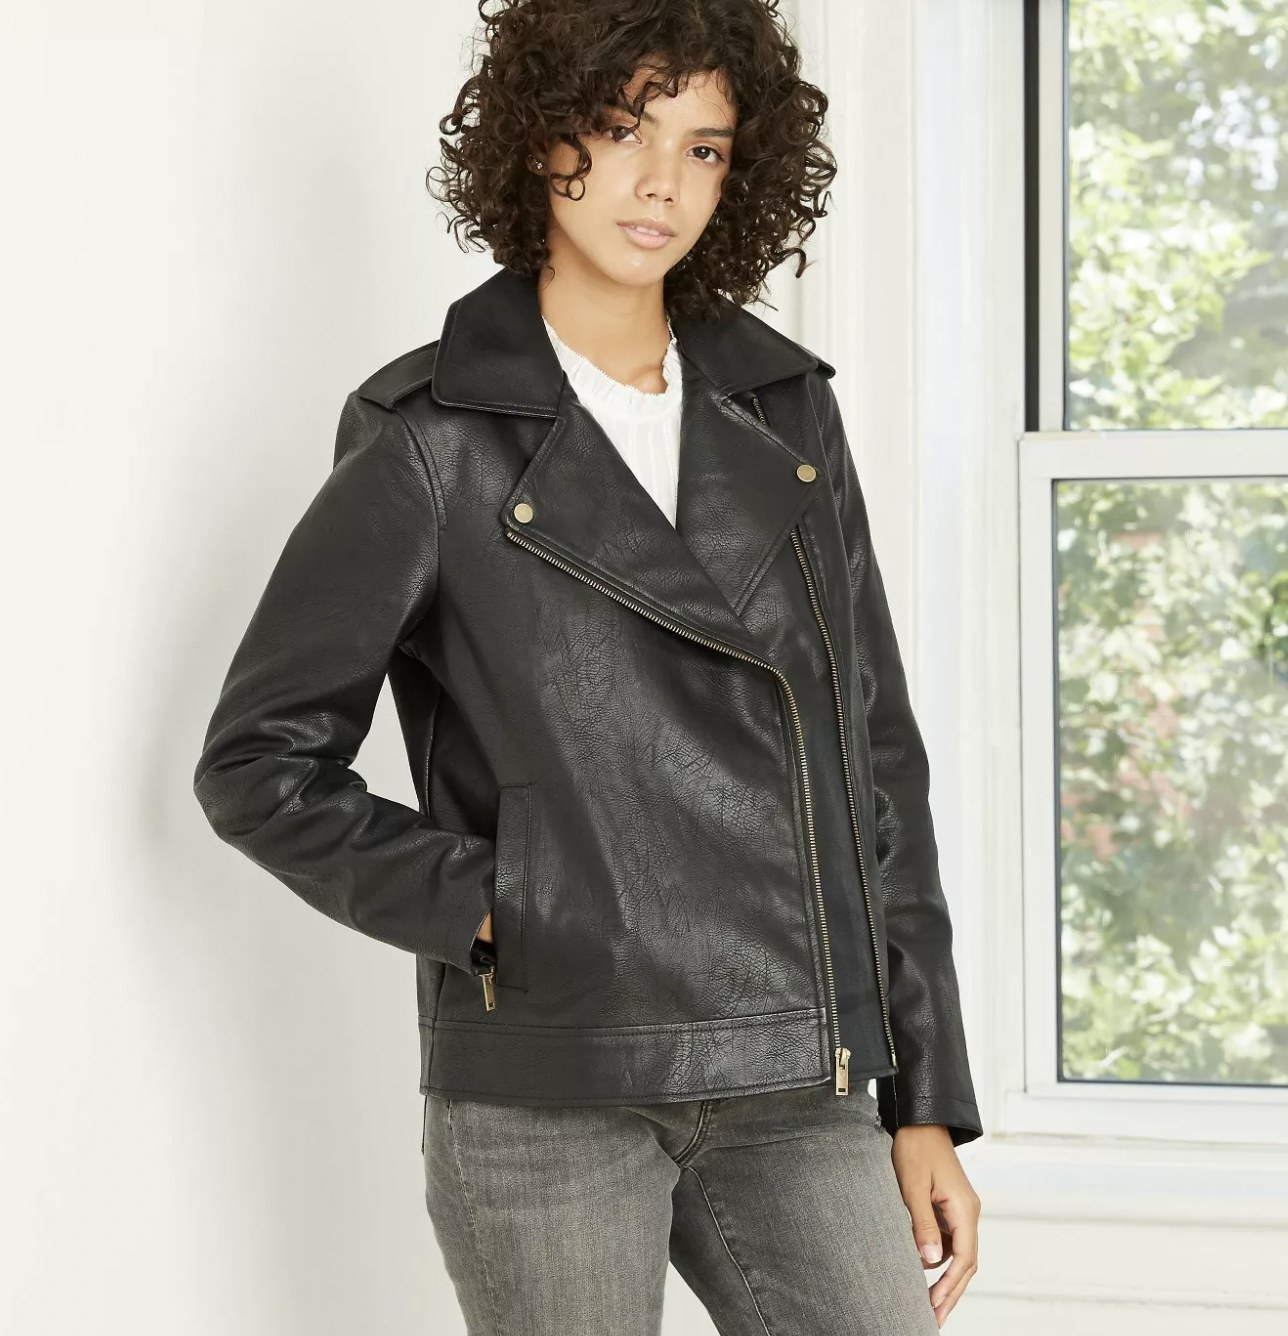 A model wearing a moto-styled leather jacket